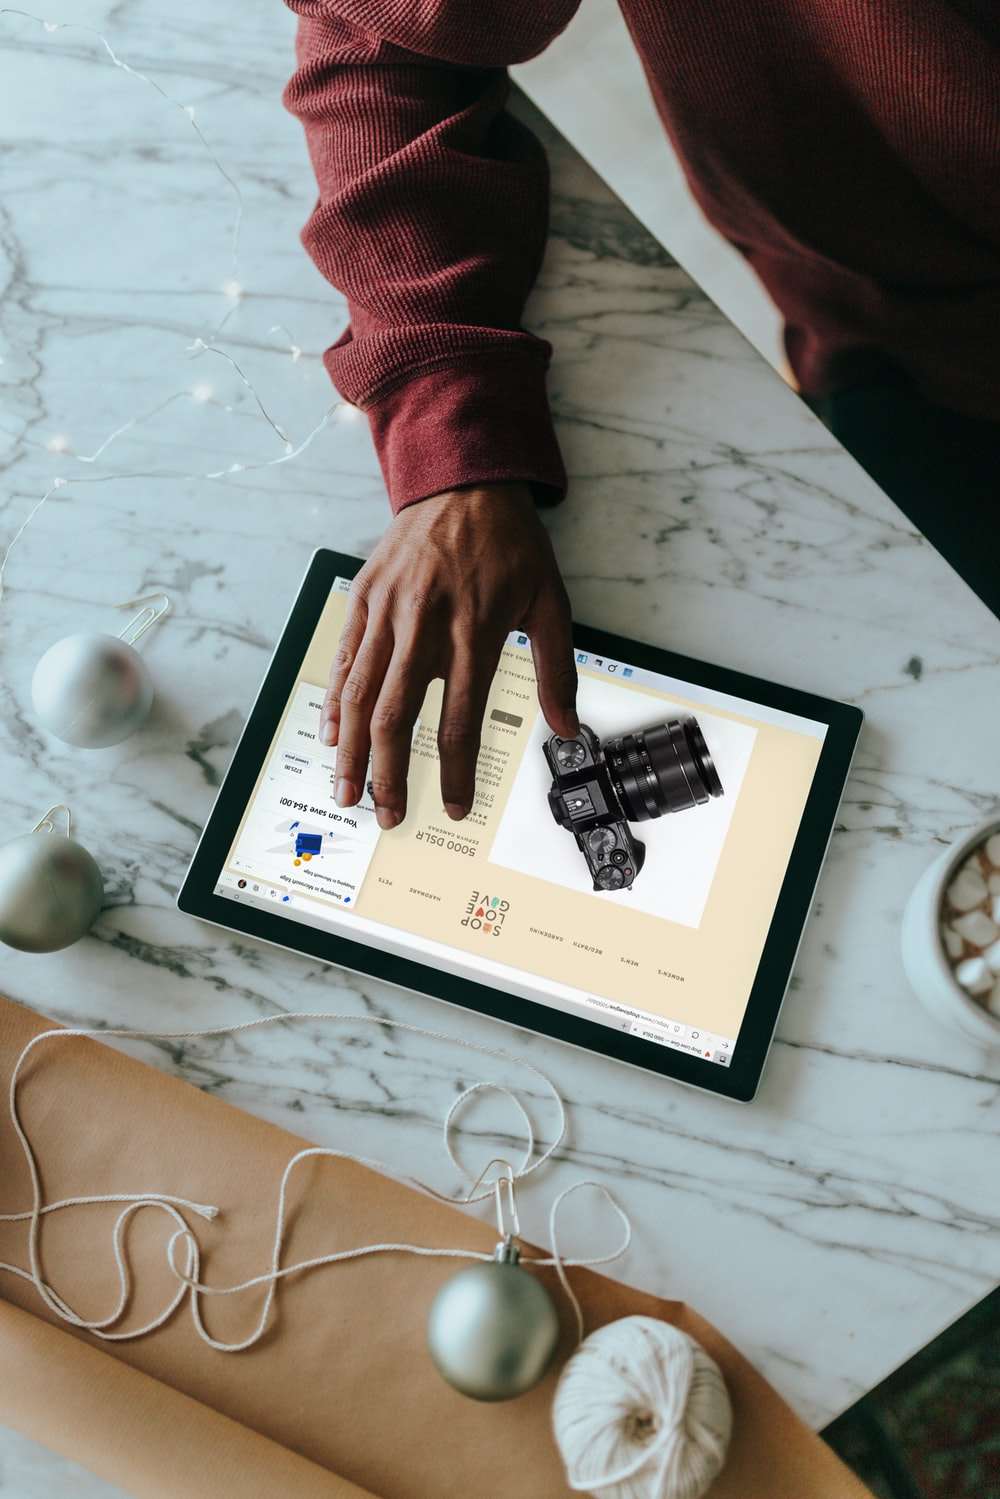 Overhead view of a person clicking on a Surface laptop with wrapping presents around